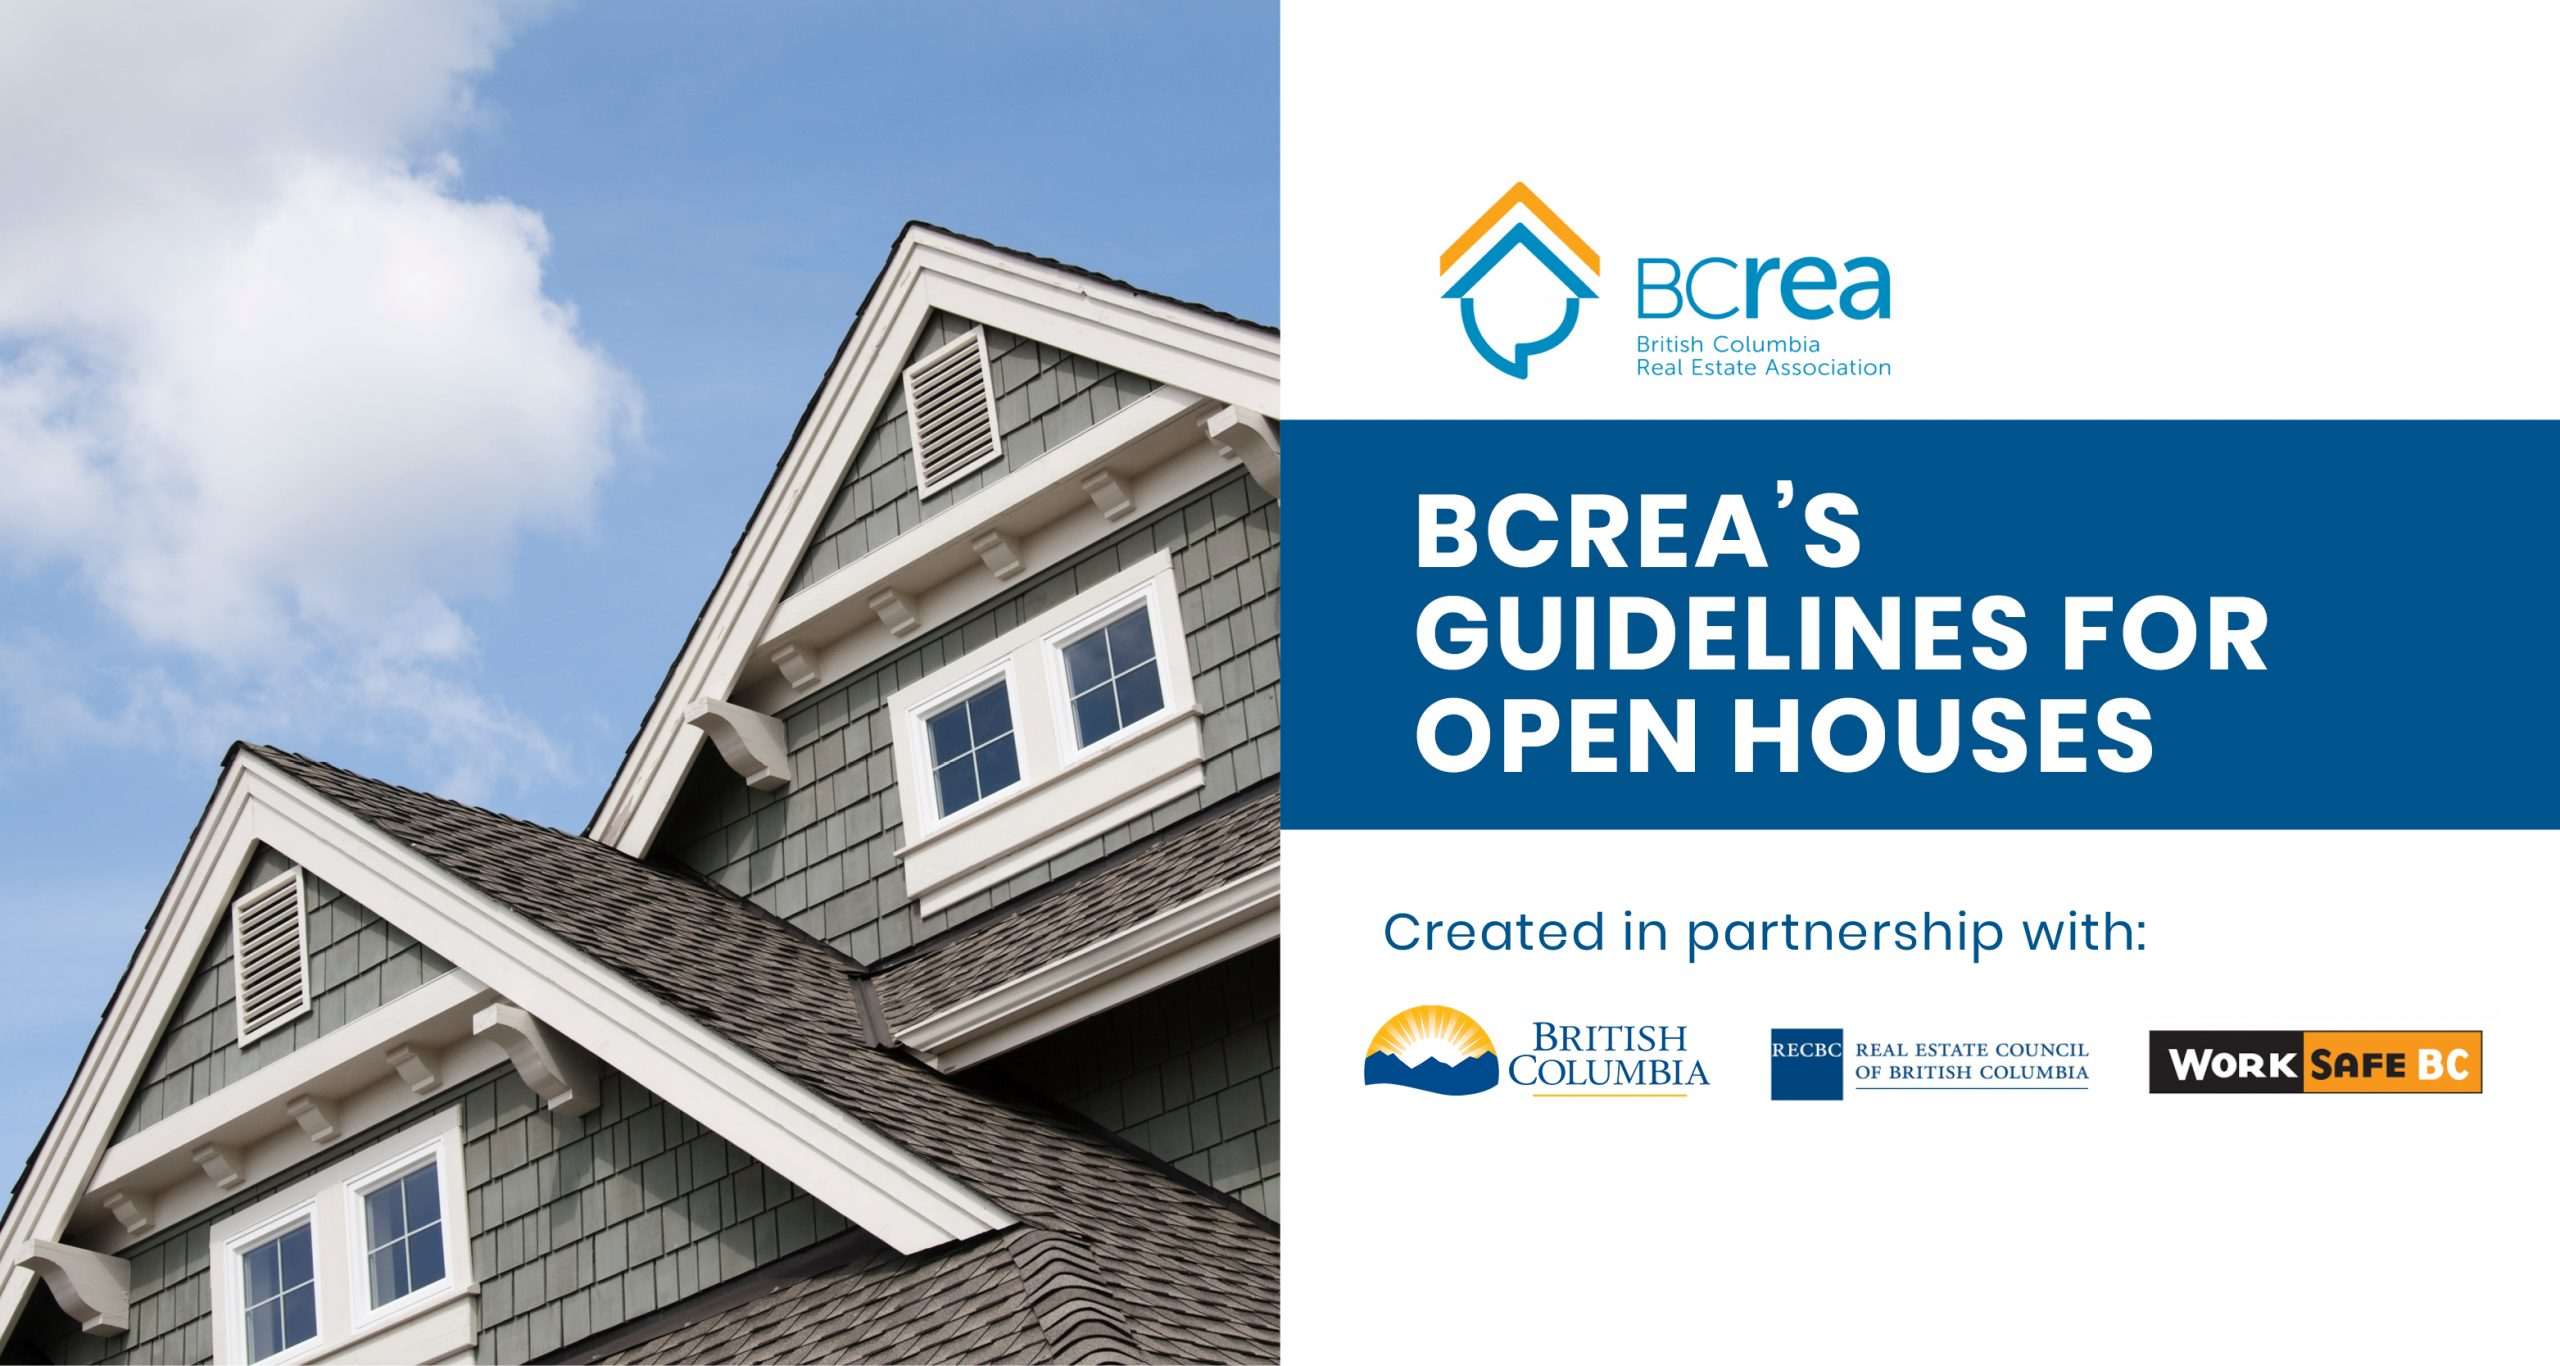 BC organized real estate & regulators reach agreement re: Open Houses